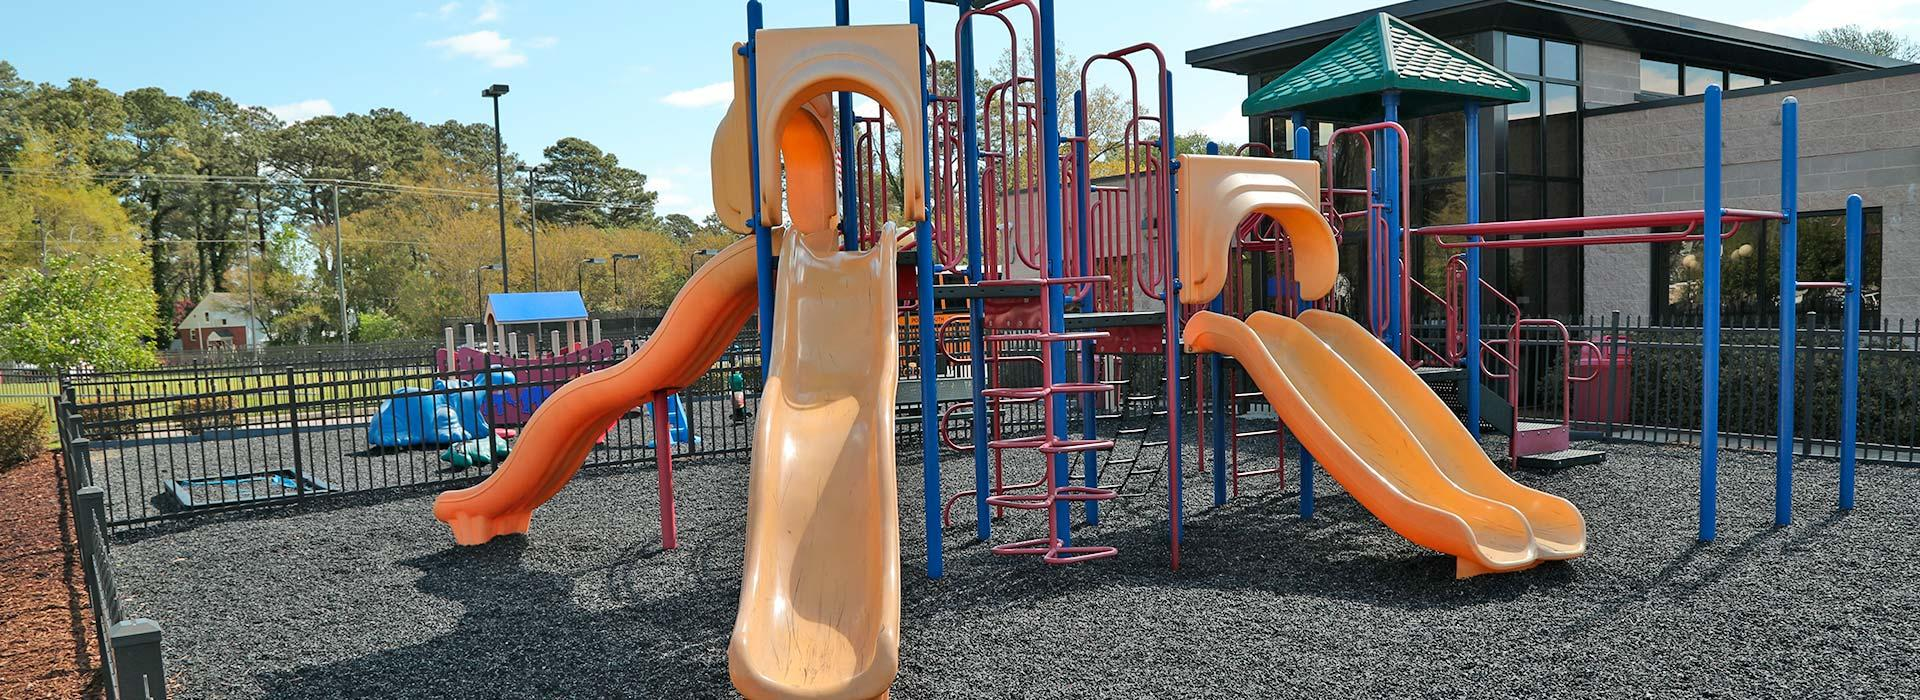 Outdoor playground at the Portsmouth YMCA